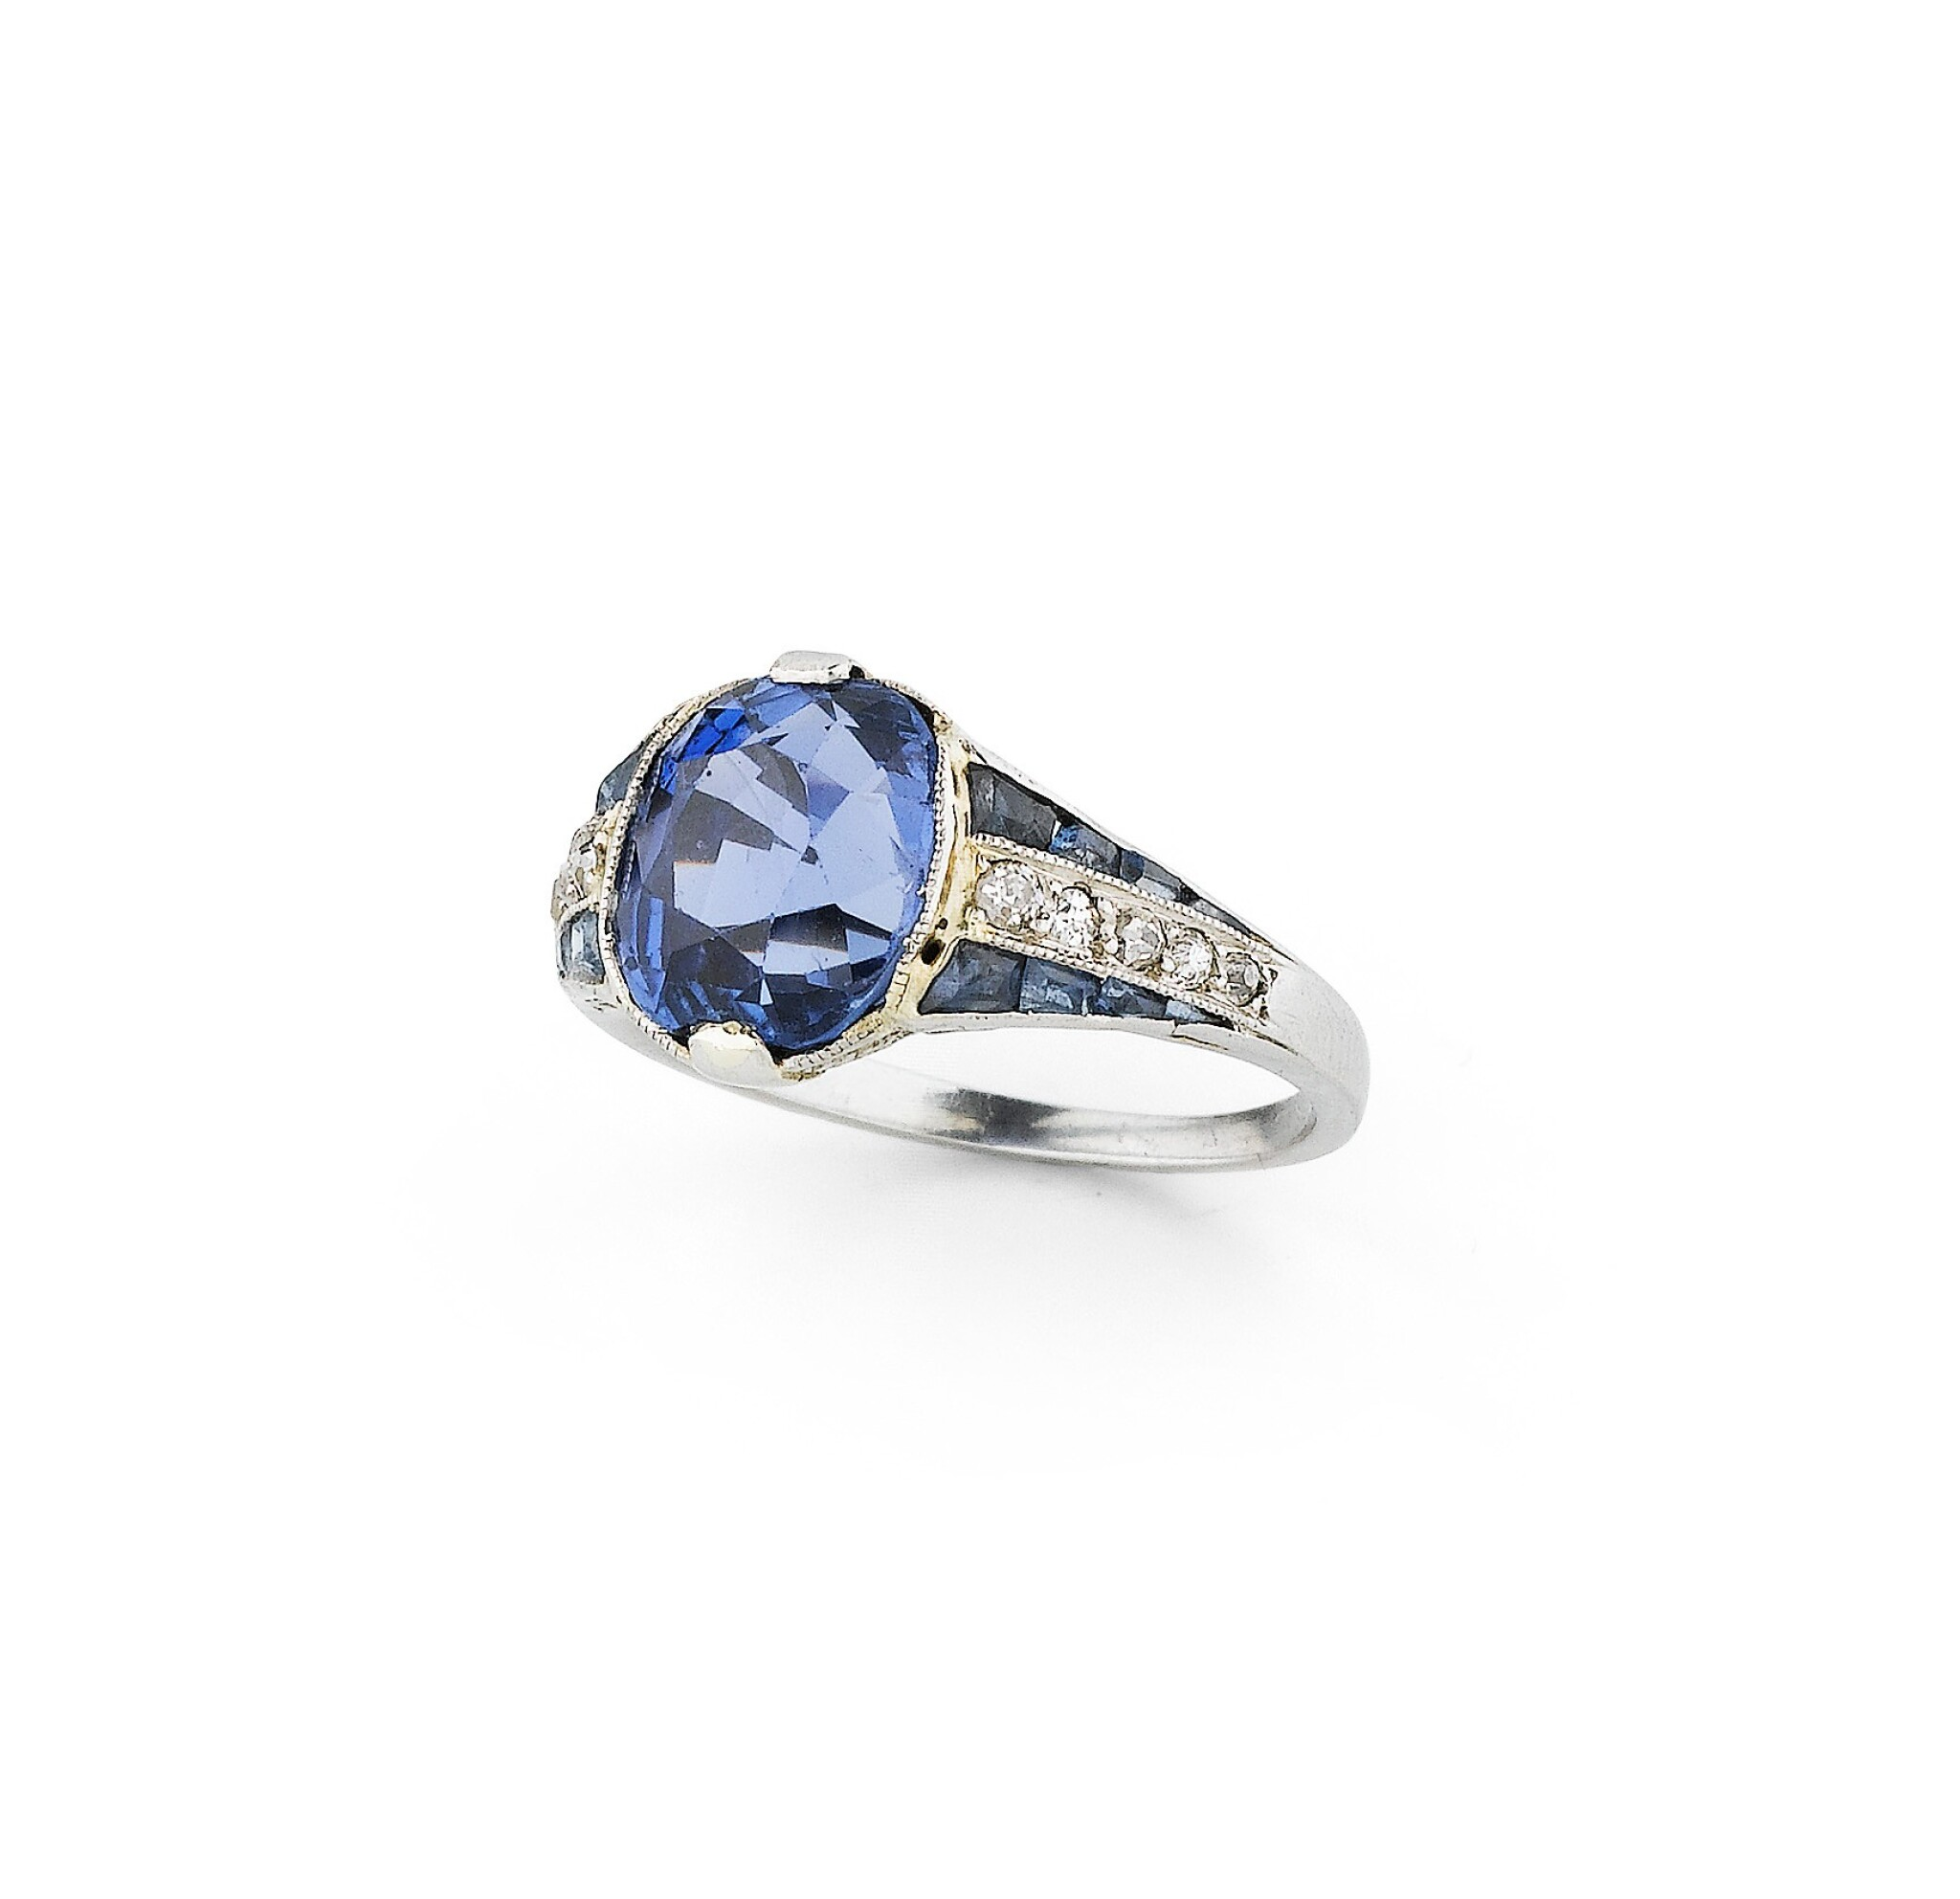 View full screen - View 1 of Lot 27. Bague saphirs et diamants | Sapphire and diamond ring.